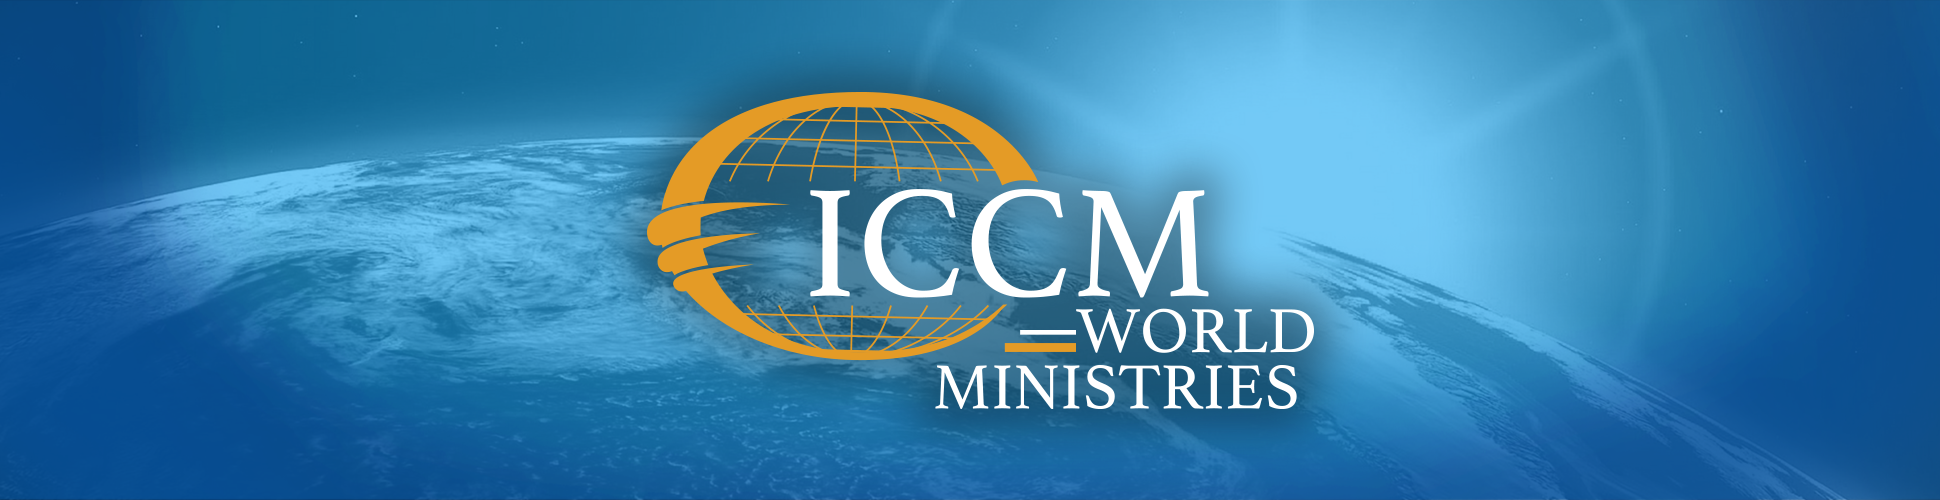 ICCM World Ministries Logo